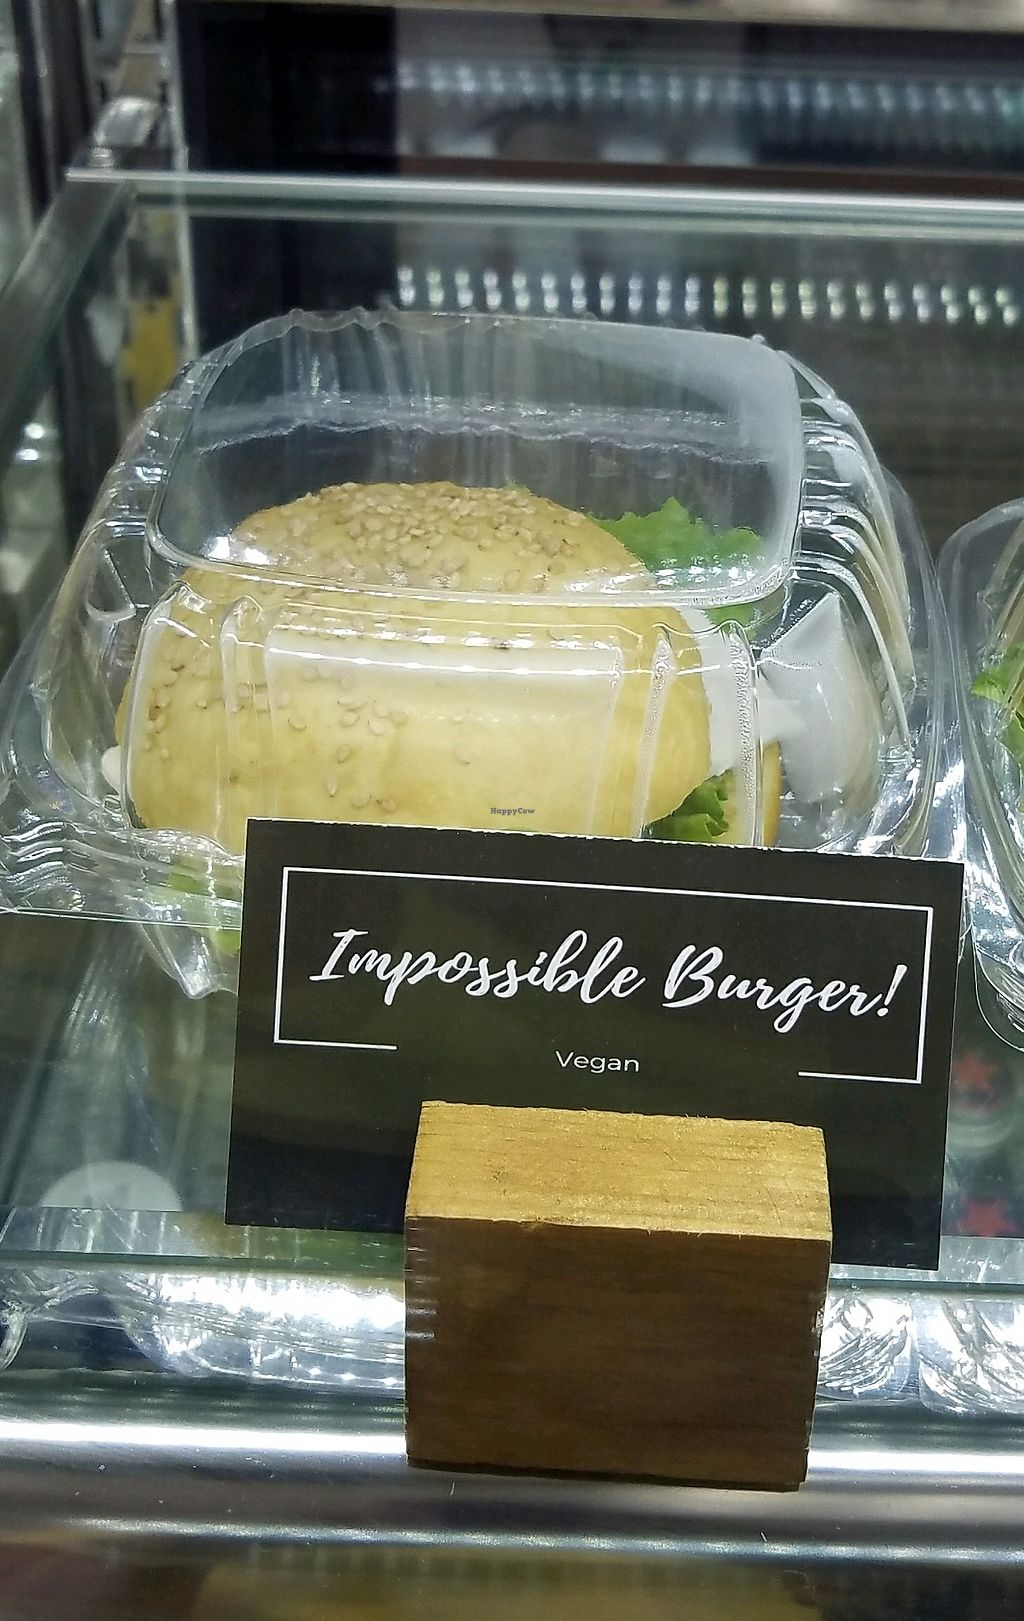 "Photo of L'Artisane Creative Bakery  by <a href=""/members/profile/Isis%20N."">Isis N.</a> <br/>The Impossible Burger  <br/> March 25, 2018  - <a href='/contact/abuse/image/114965/376028'>Report</a>"